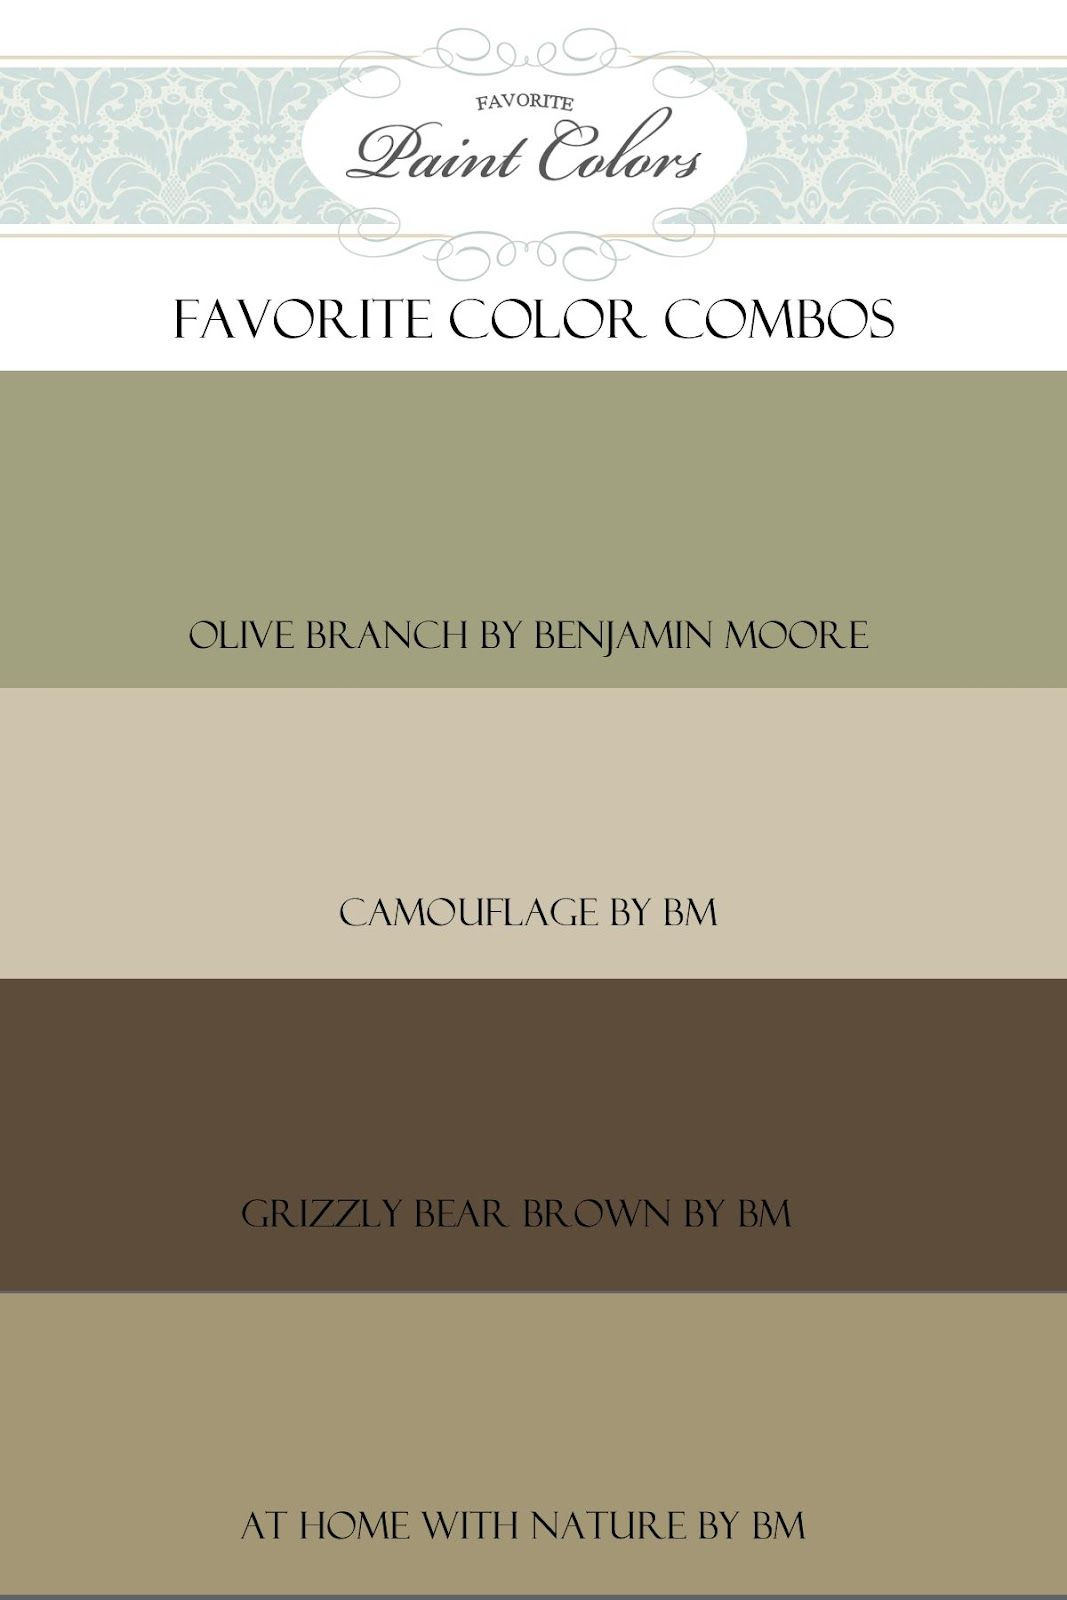 Favorite Paint Colors Great Site To See In Actual Rooms Lots Of Choices With Color Names